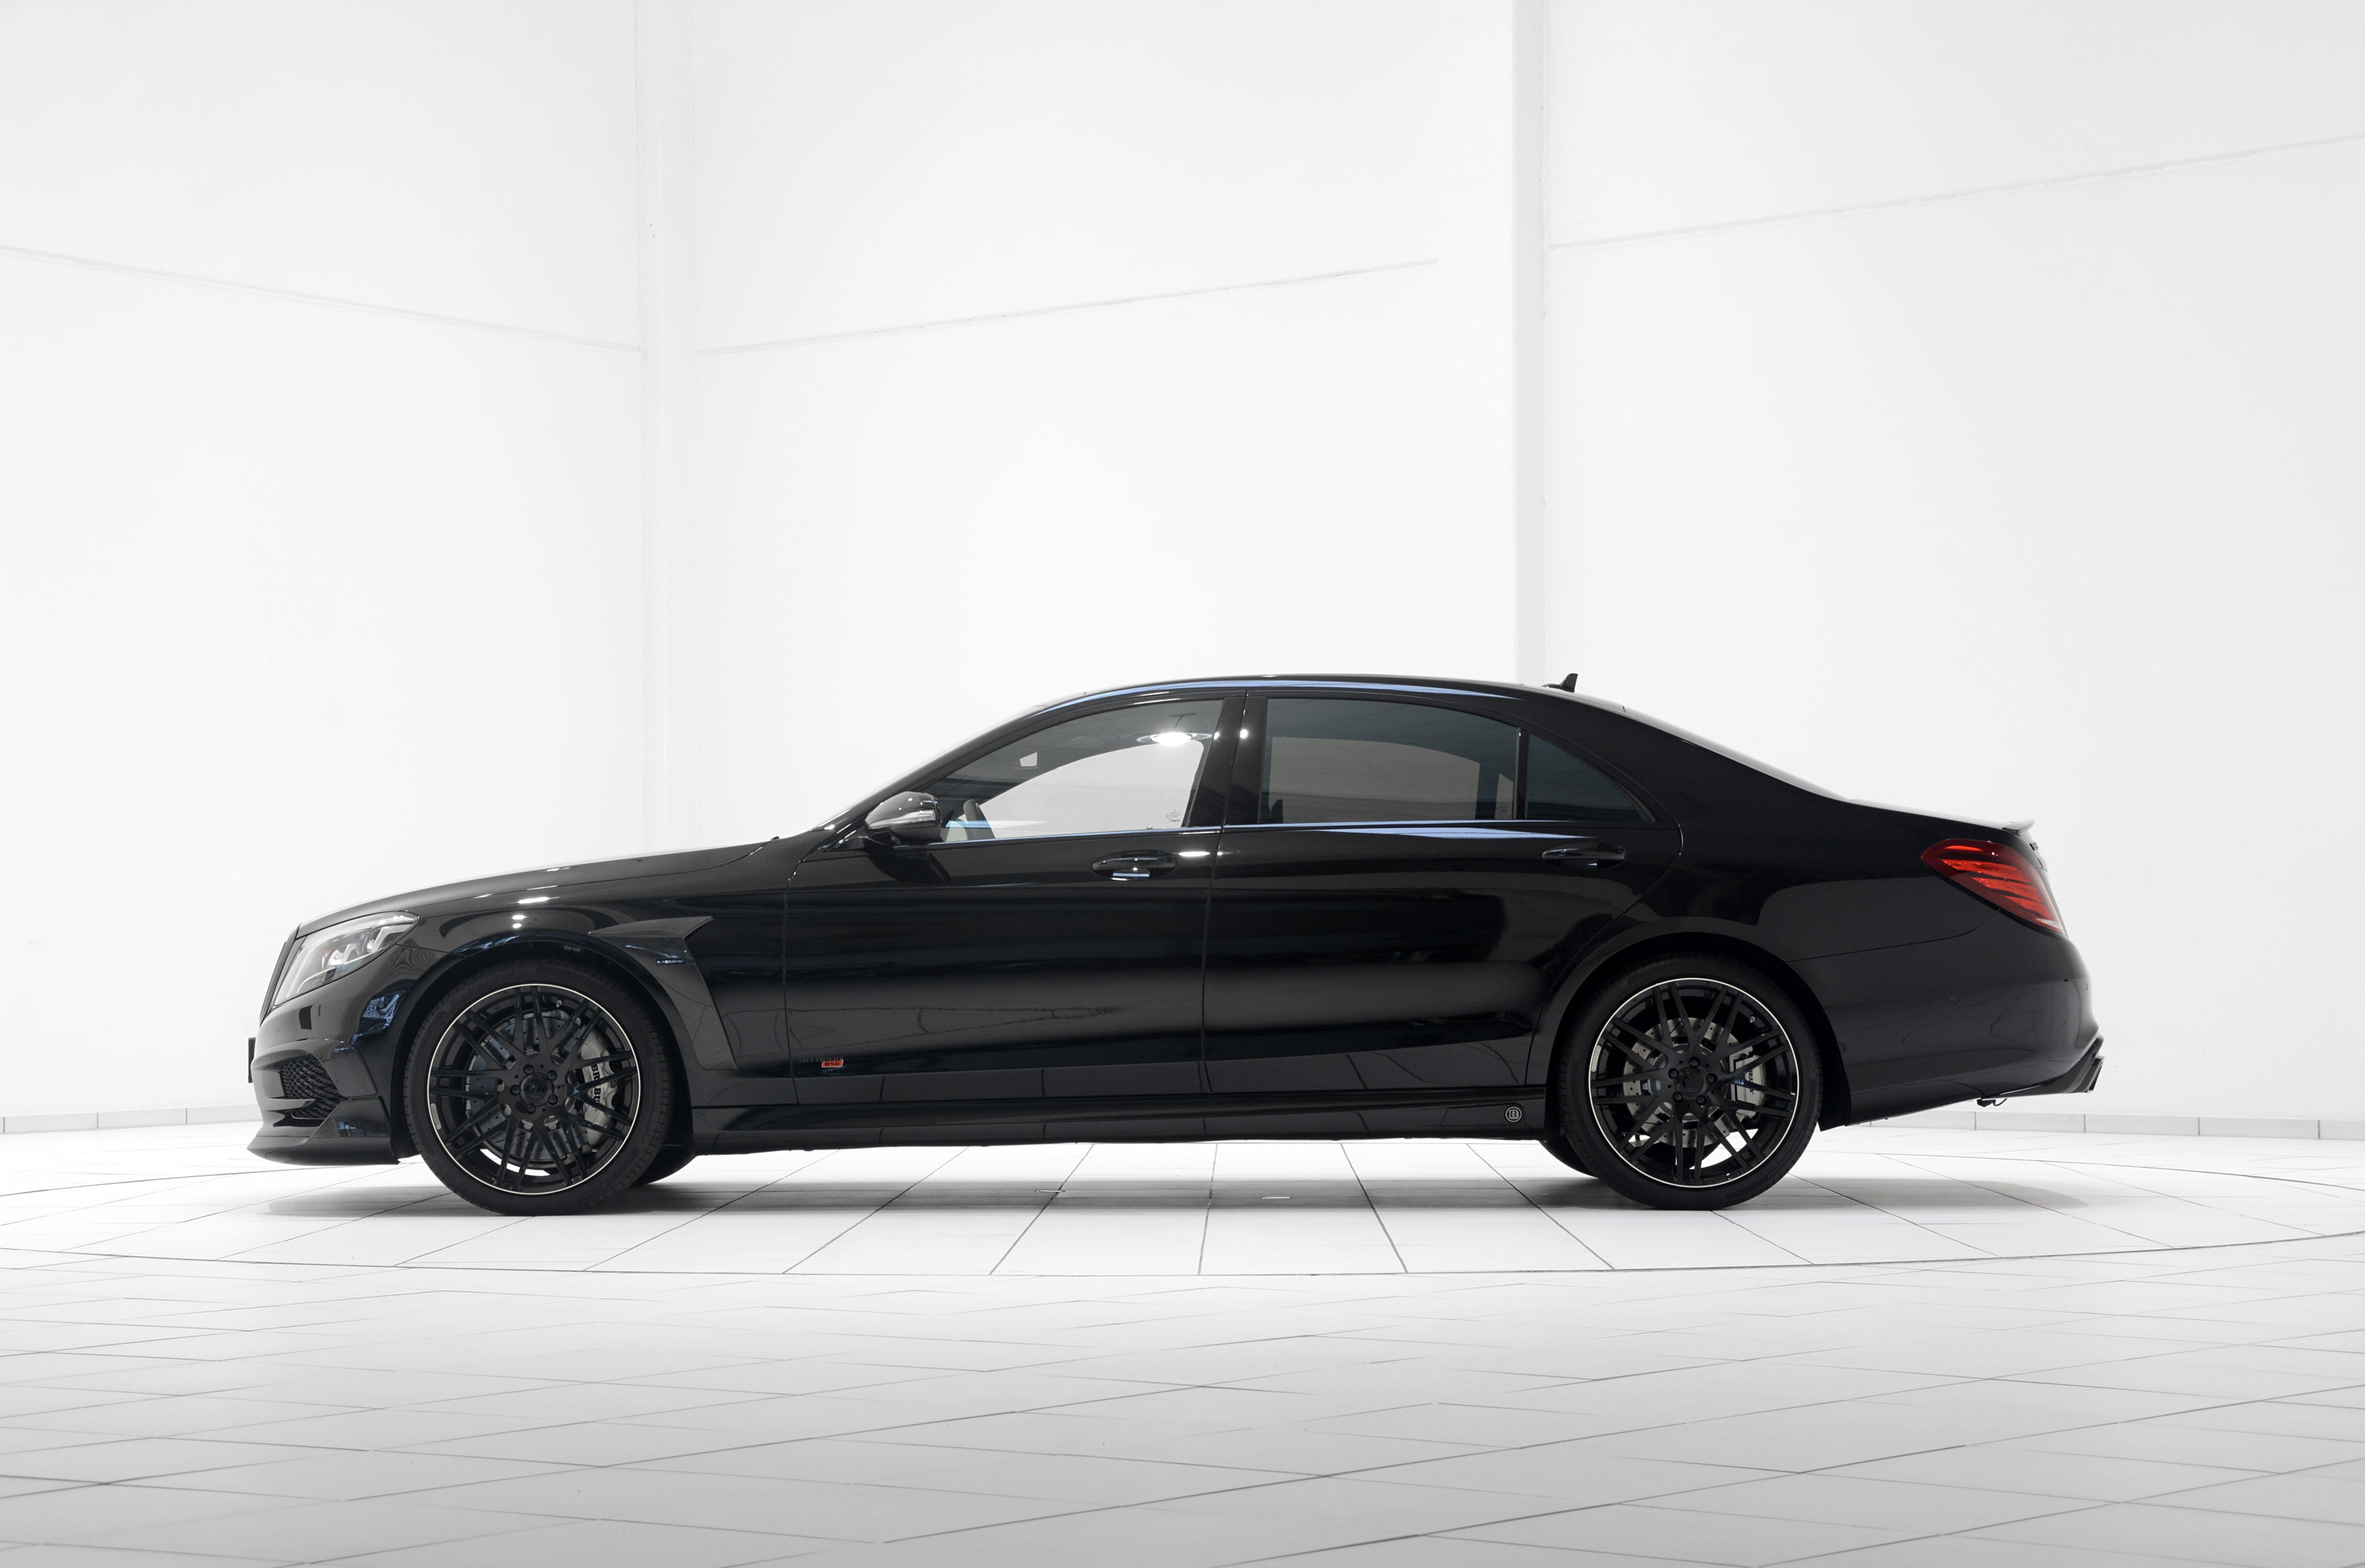 Brabus 850 s based on 2014 mercedes benz s 63 amg for 2014 mercedes benz s63 amg for sale